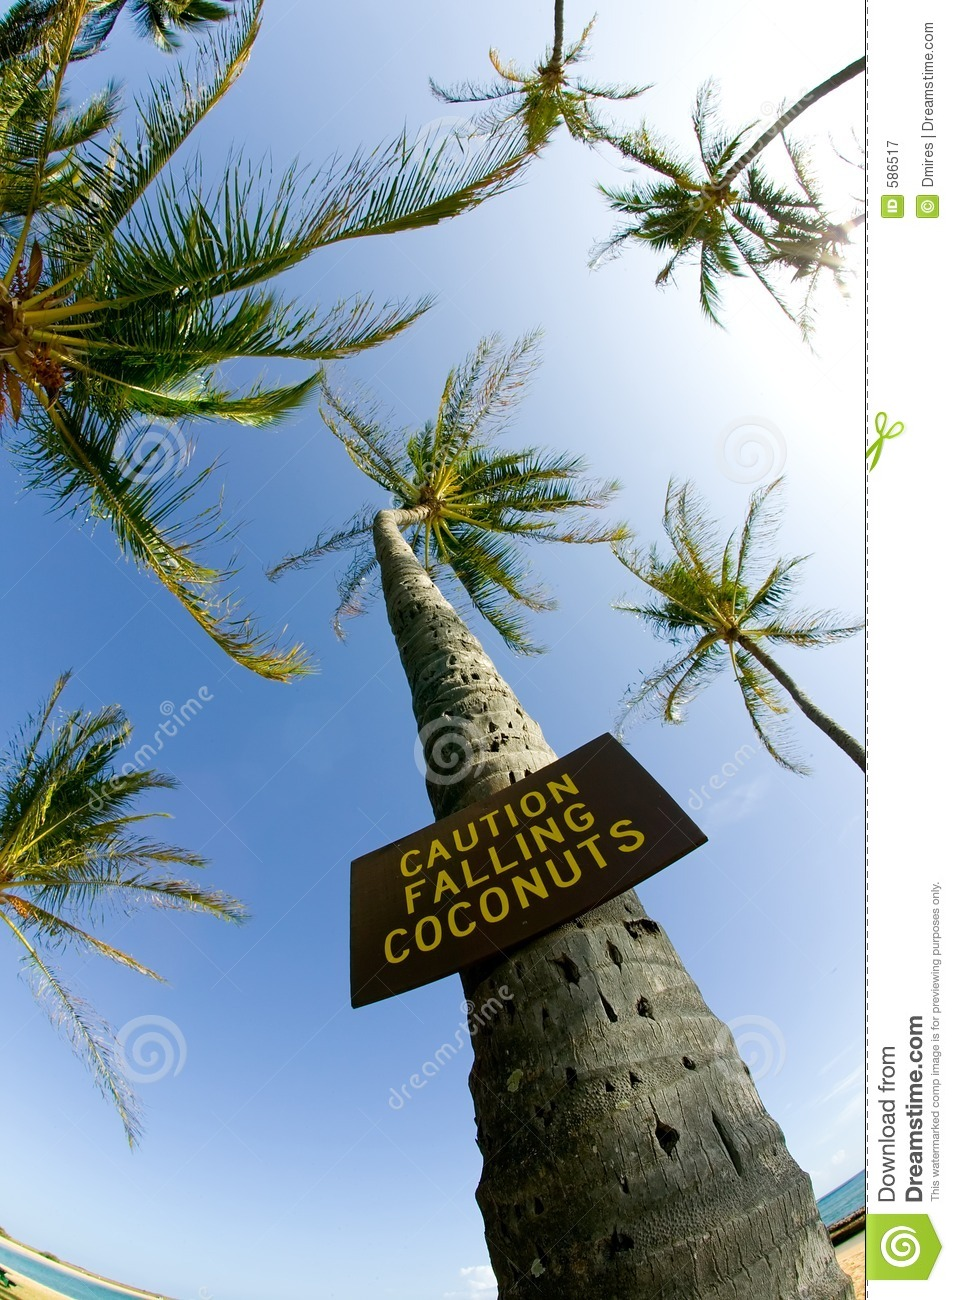 Caution Falling Coconuts Royalty Free Stock Photography